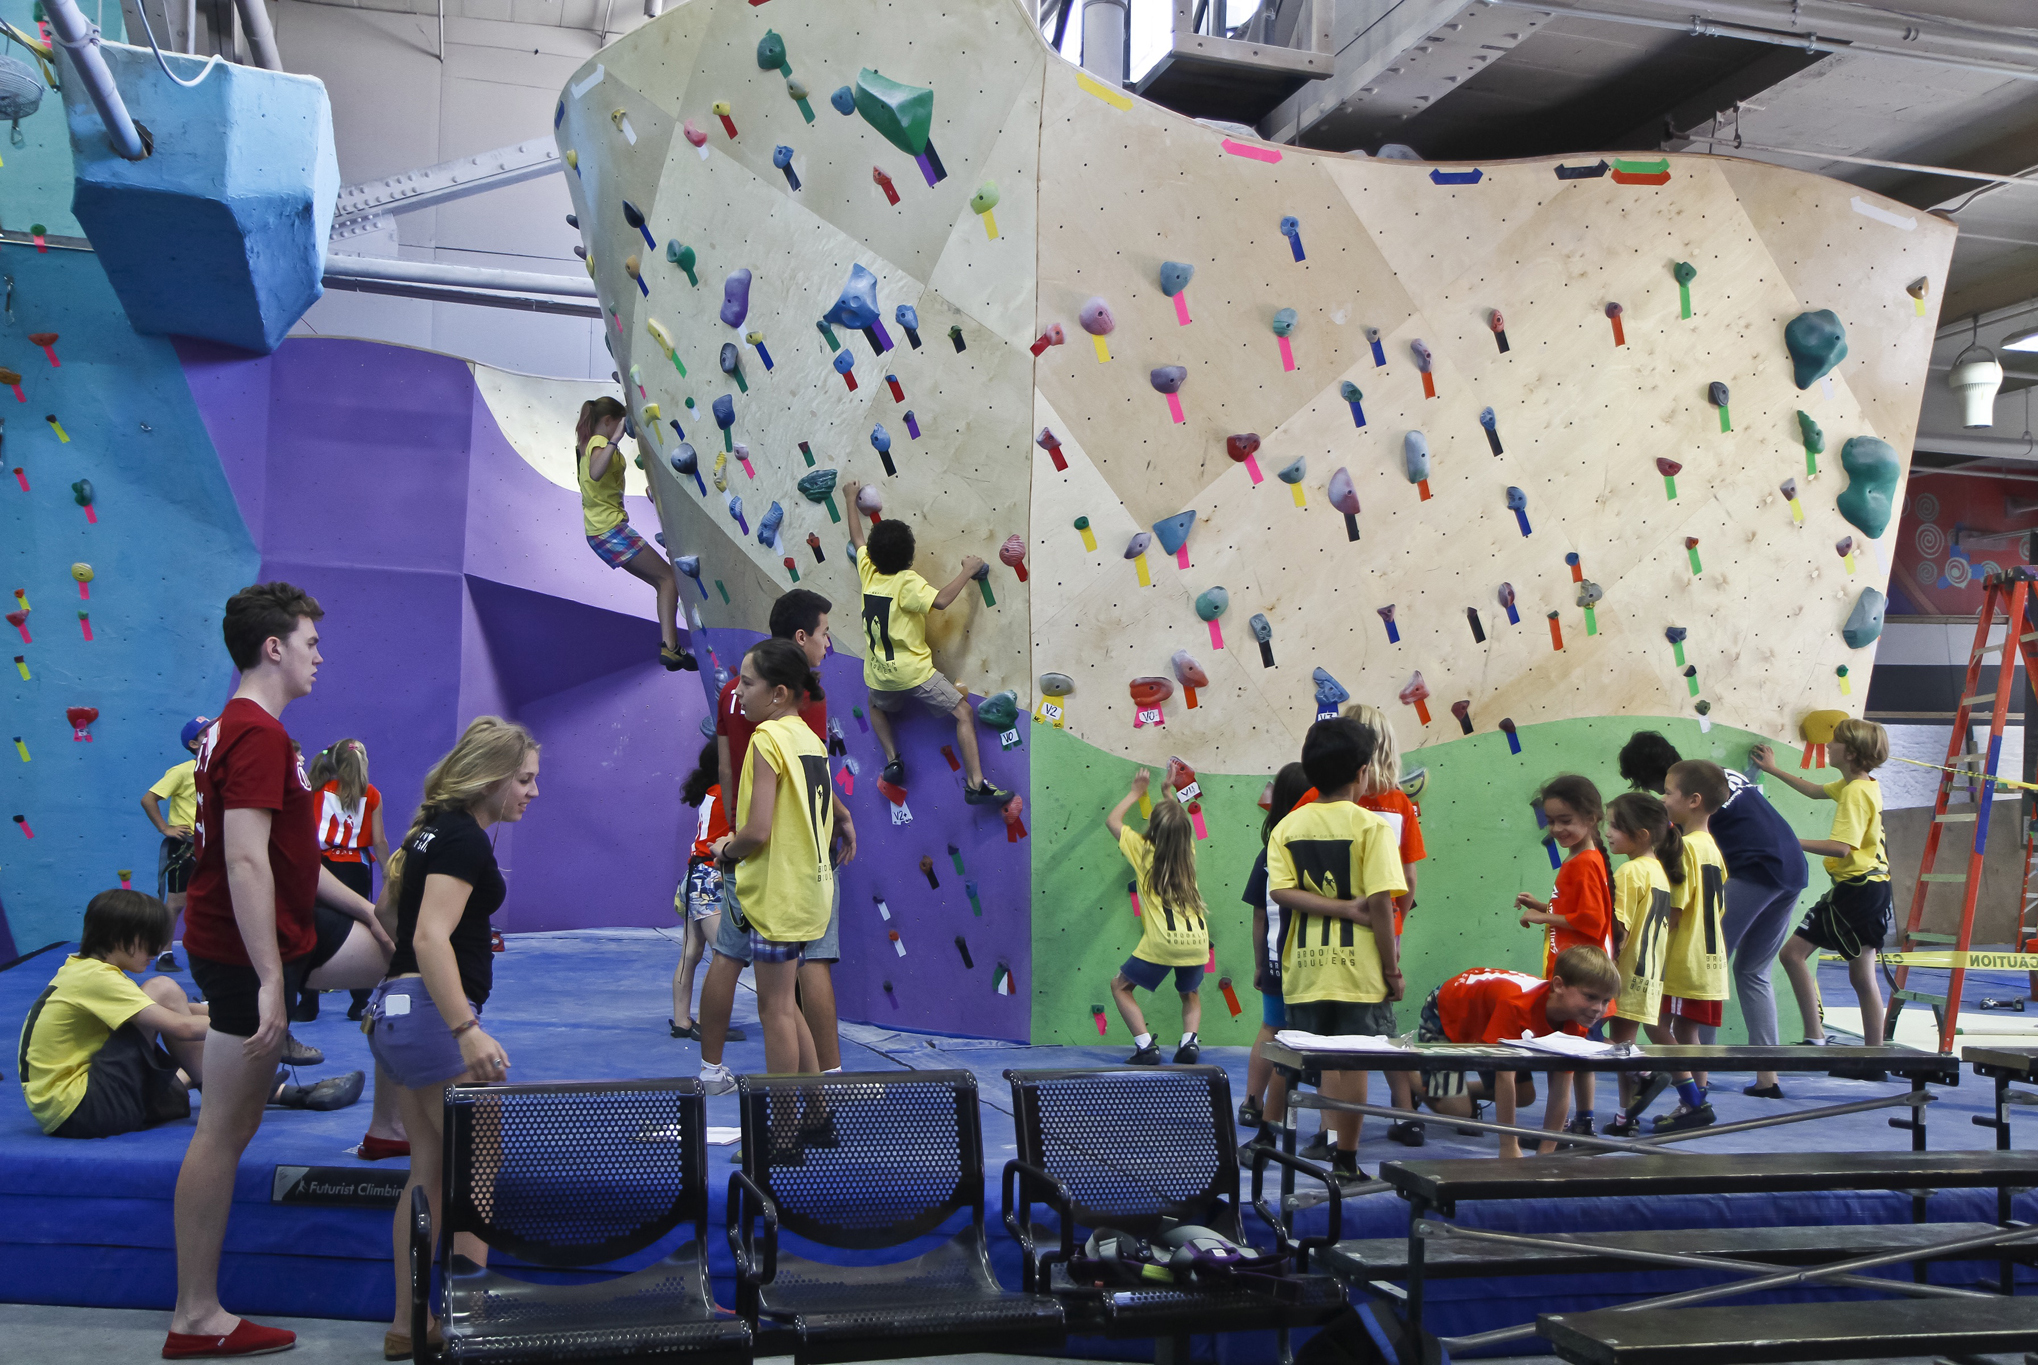 Best place to go rock climbing: Brooklyn Boulders